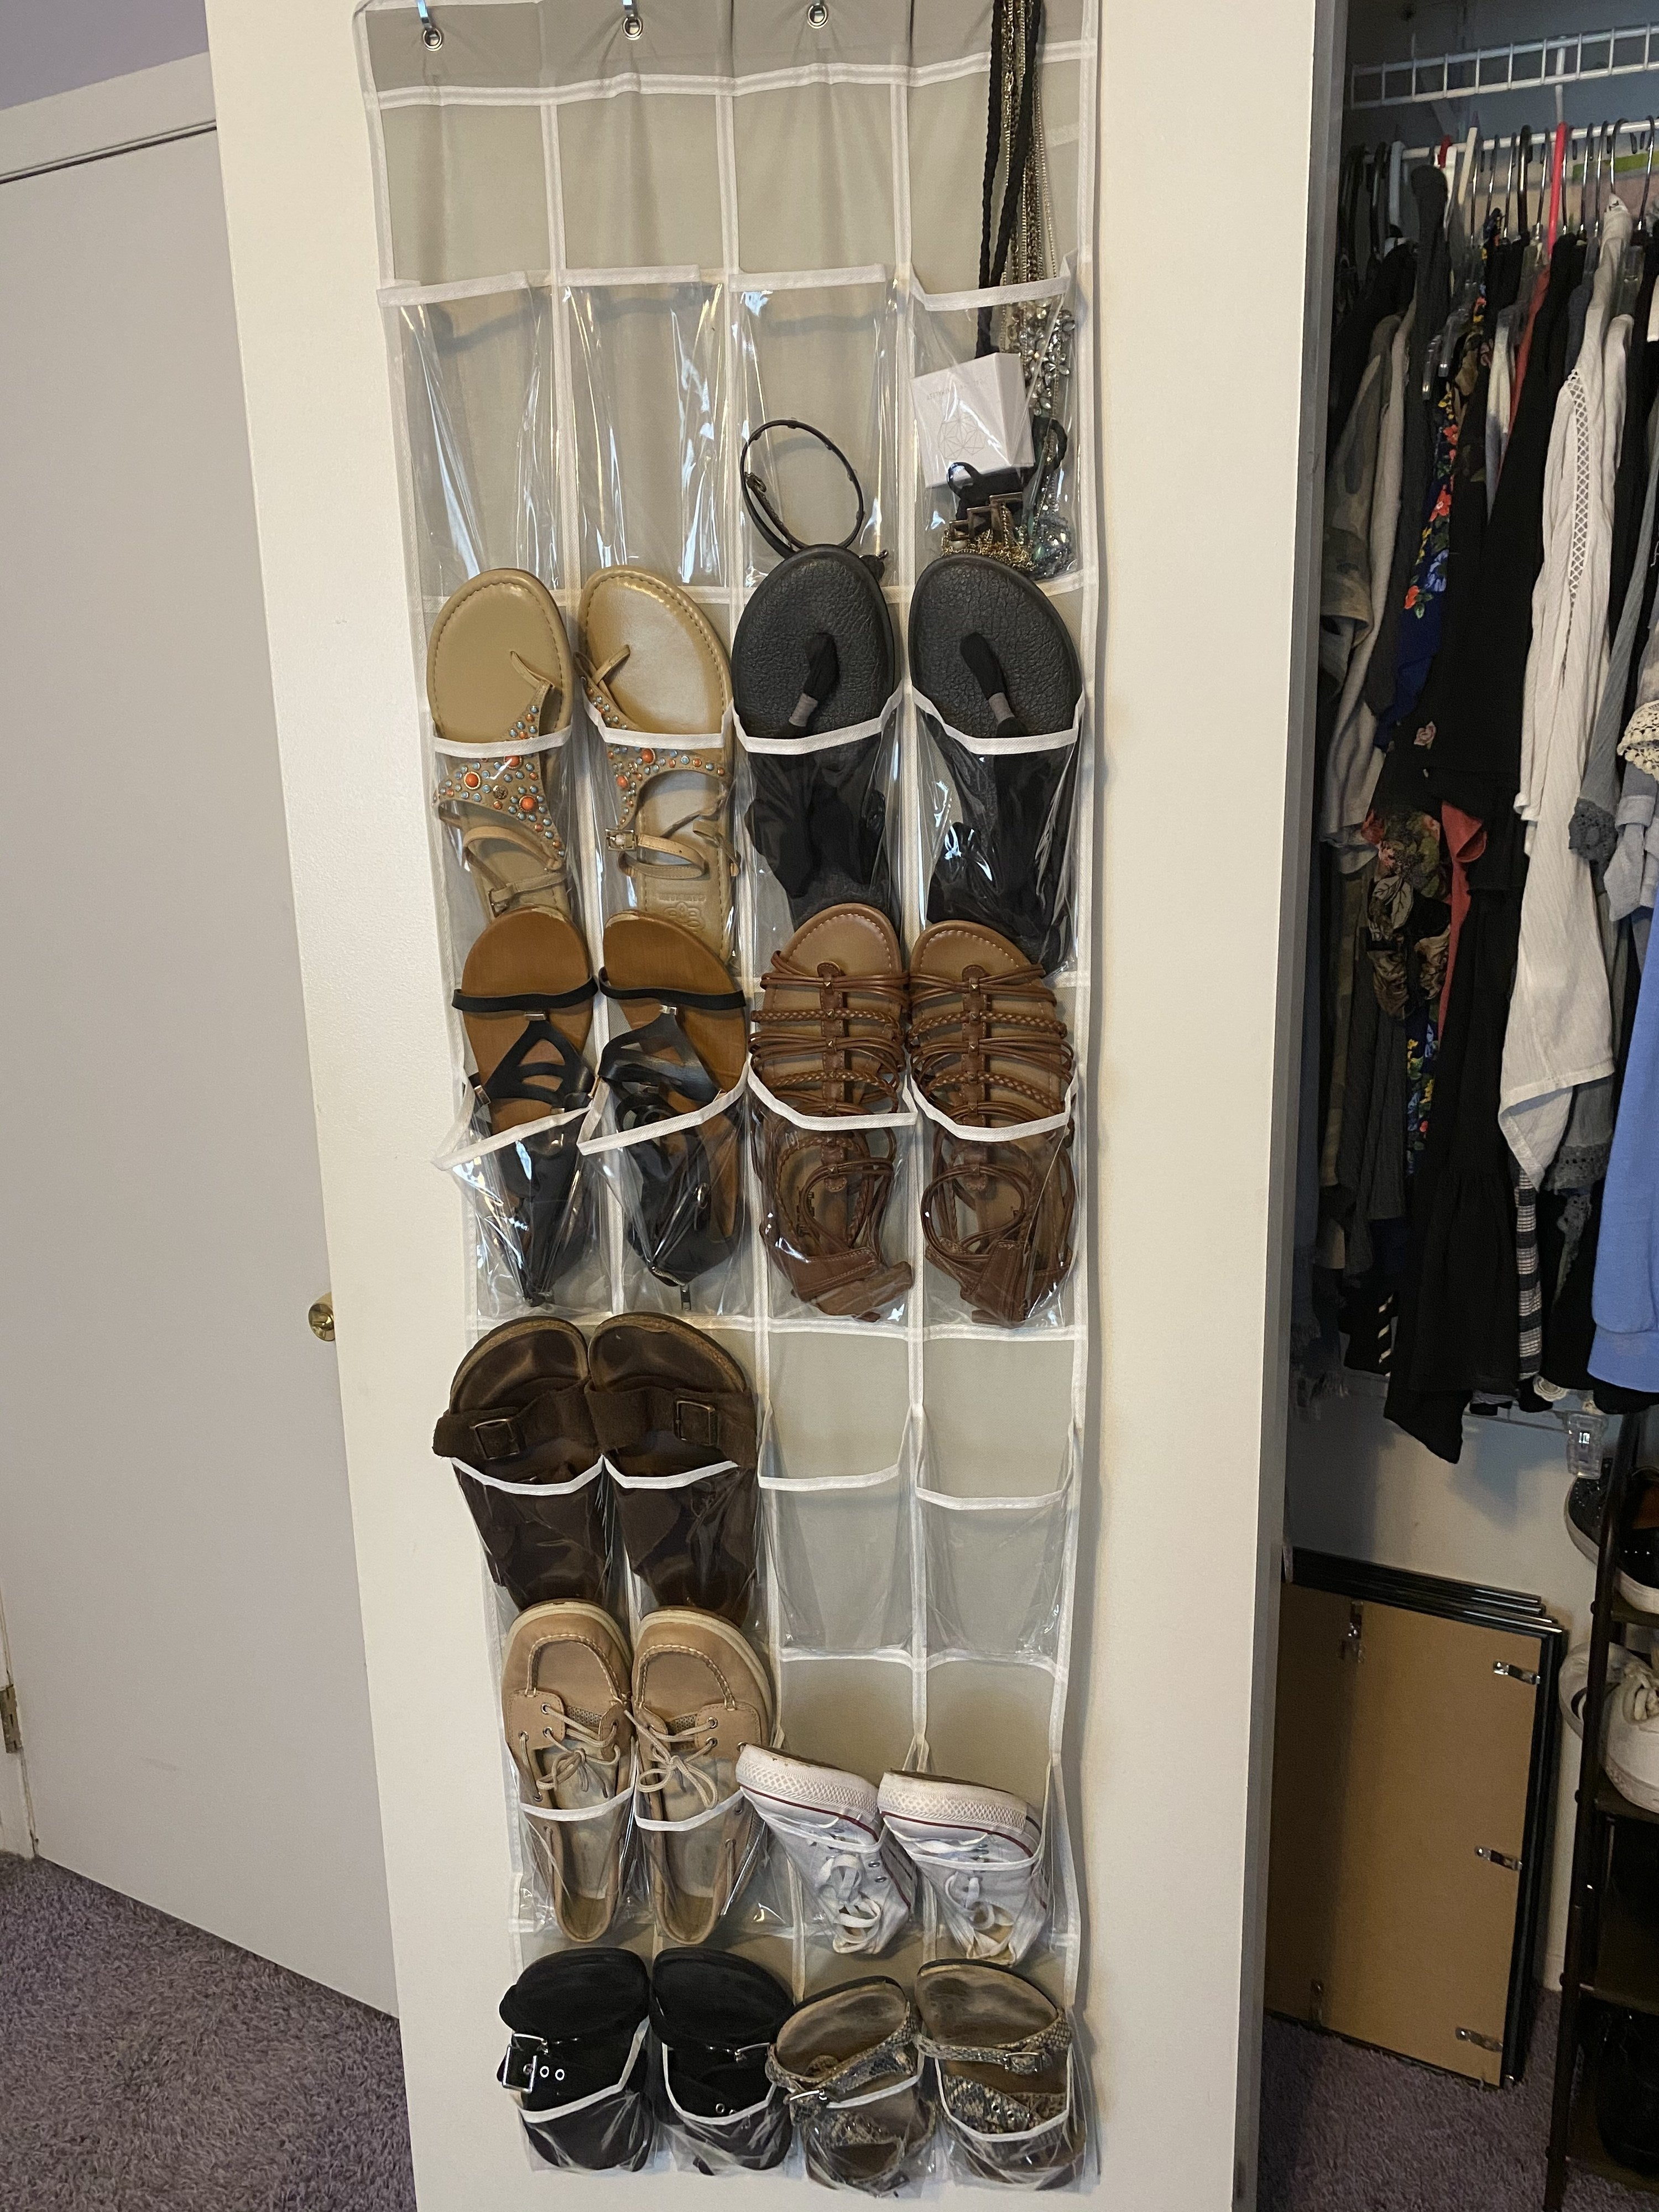 The organizer holding various shoes